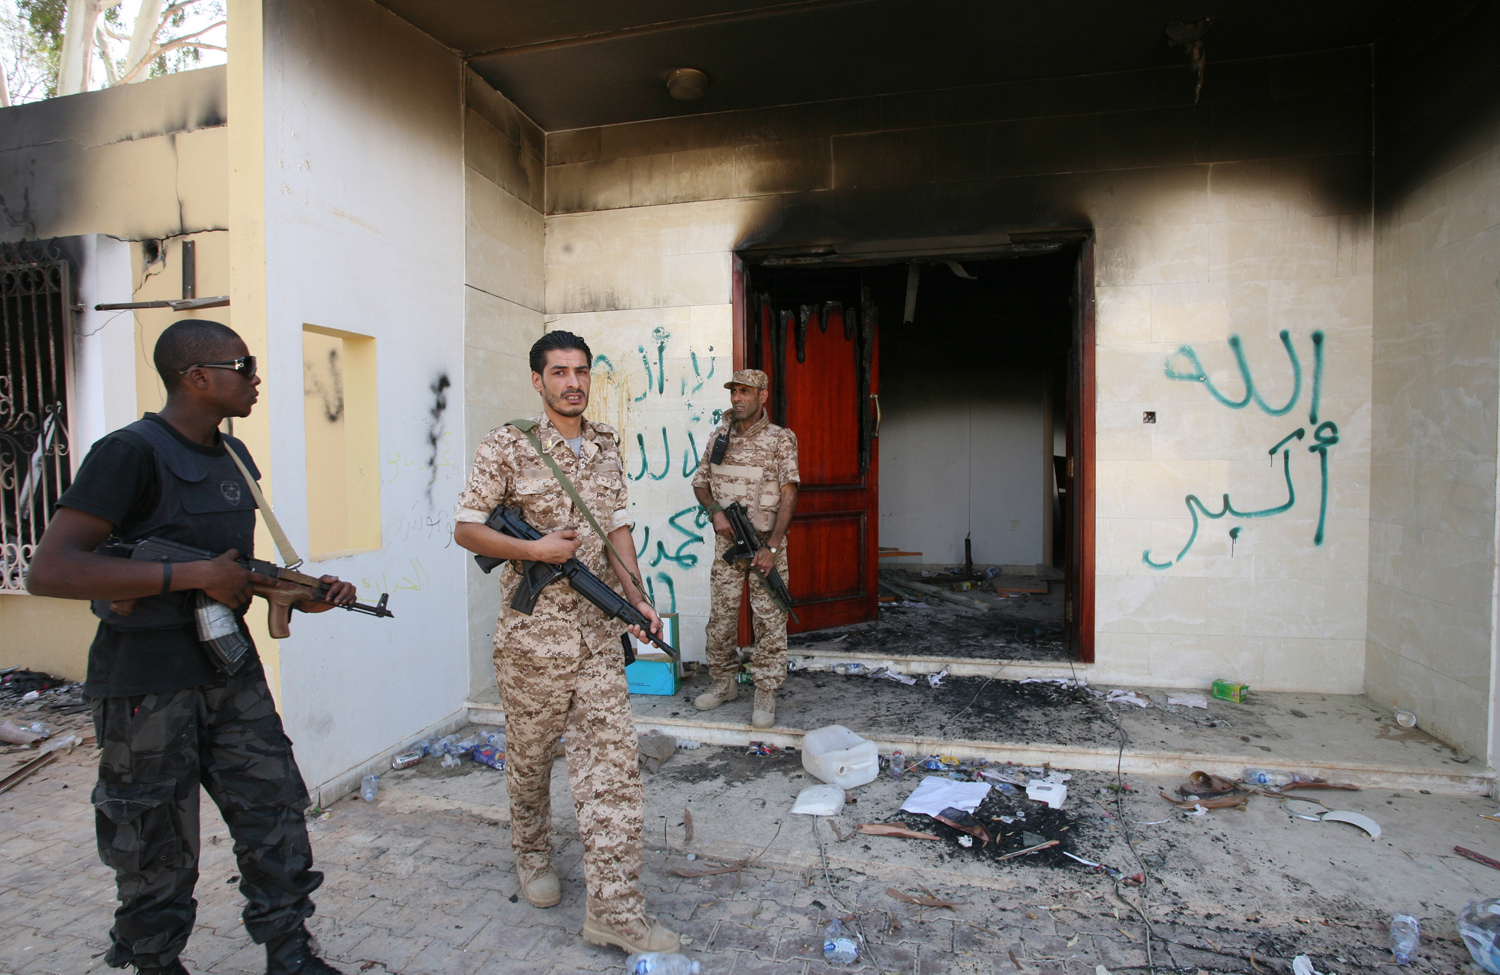 The-burnt-out-buildings-of-the-U.S.-consulate-in-Benghazi-Libya.-AP-PhotoMohammad-Hannon